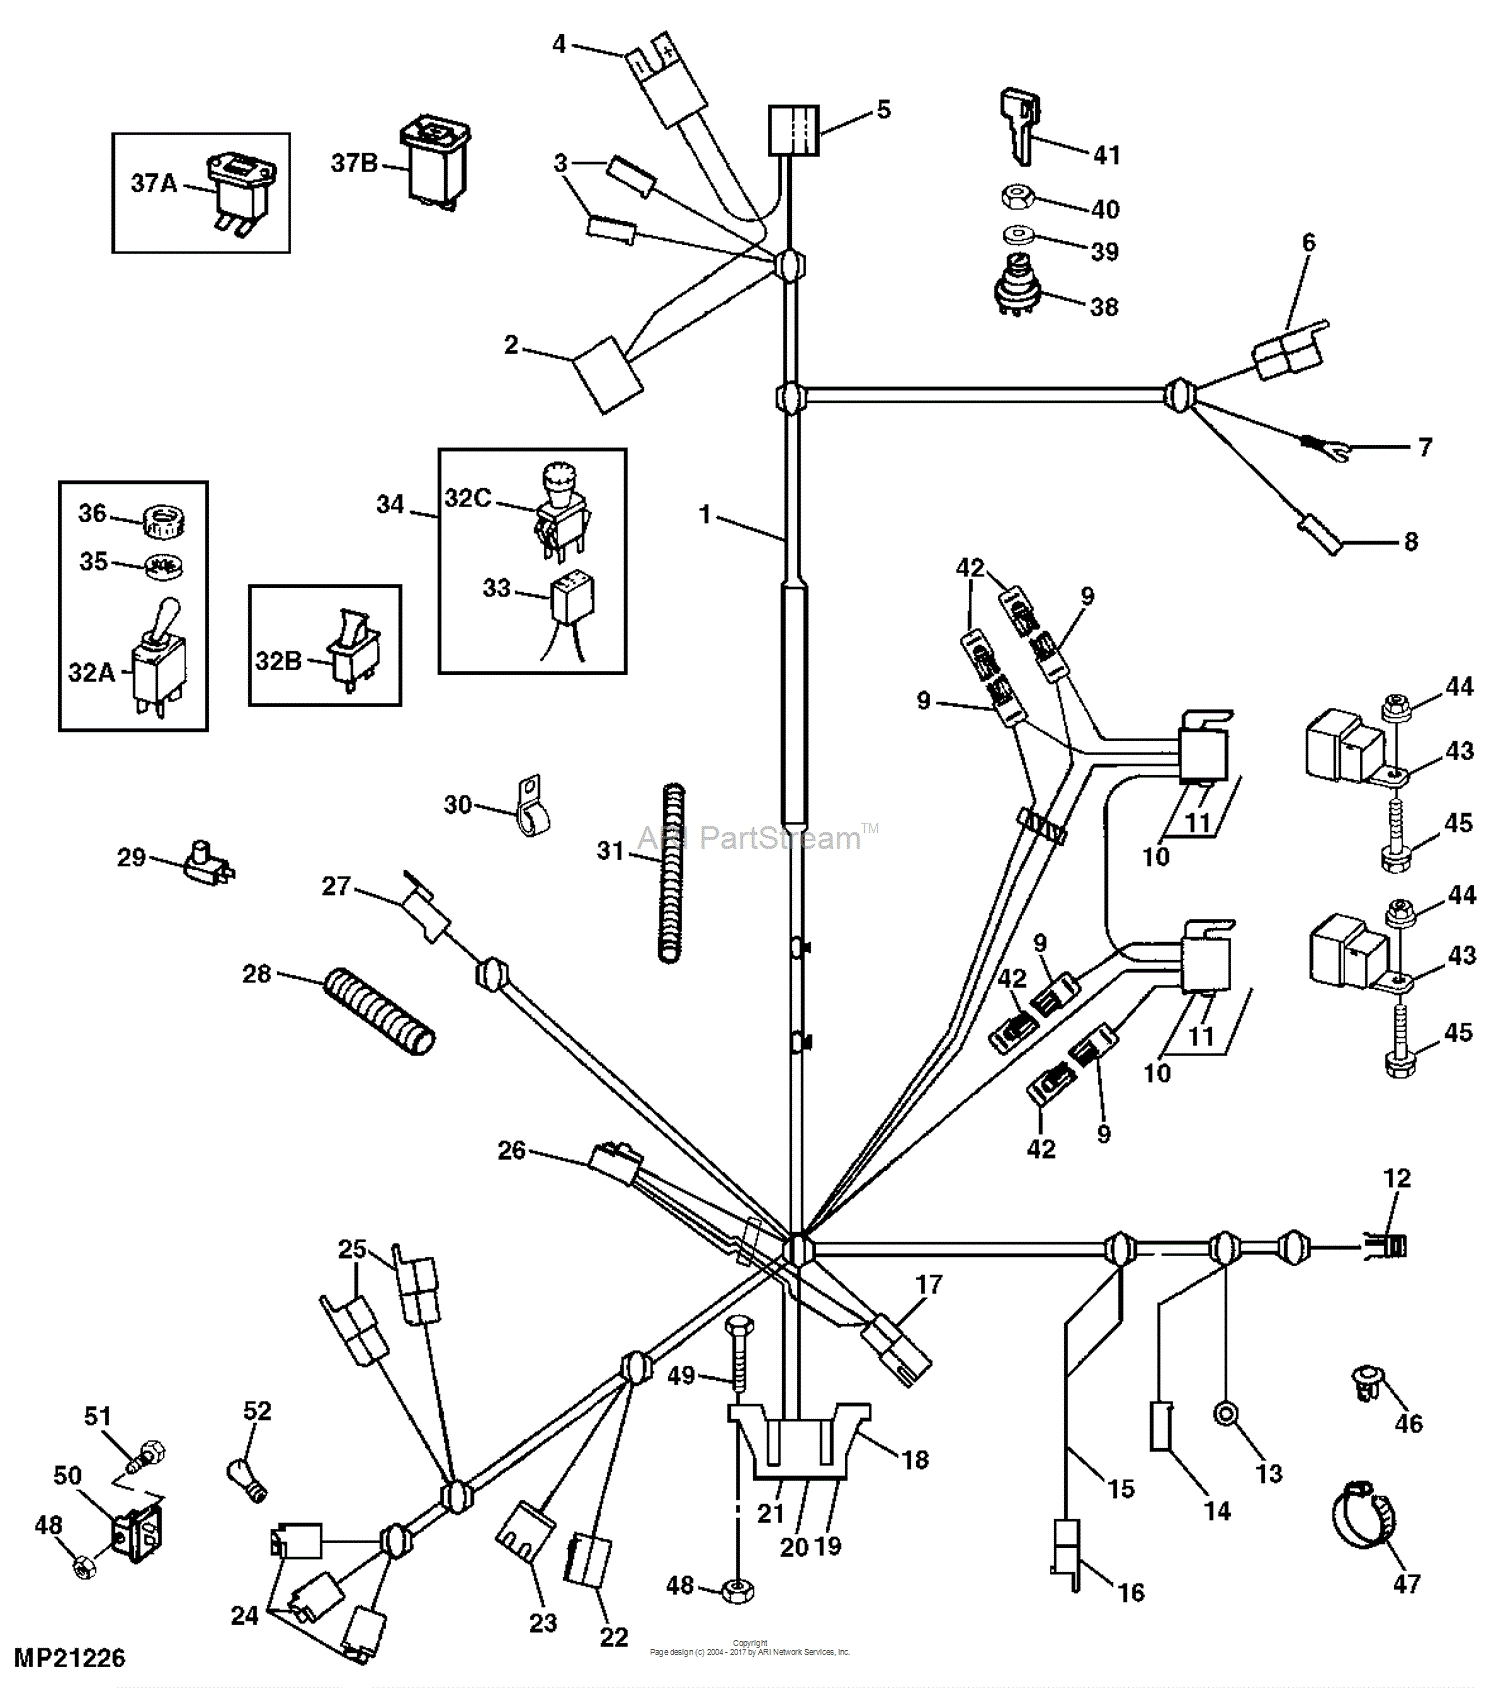 john deere engine diagram john deere f525 wiring diagram | free wiring diagram john deere engine diagrams